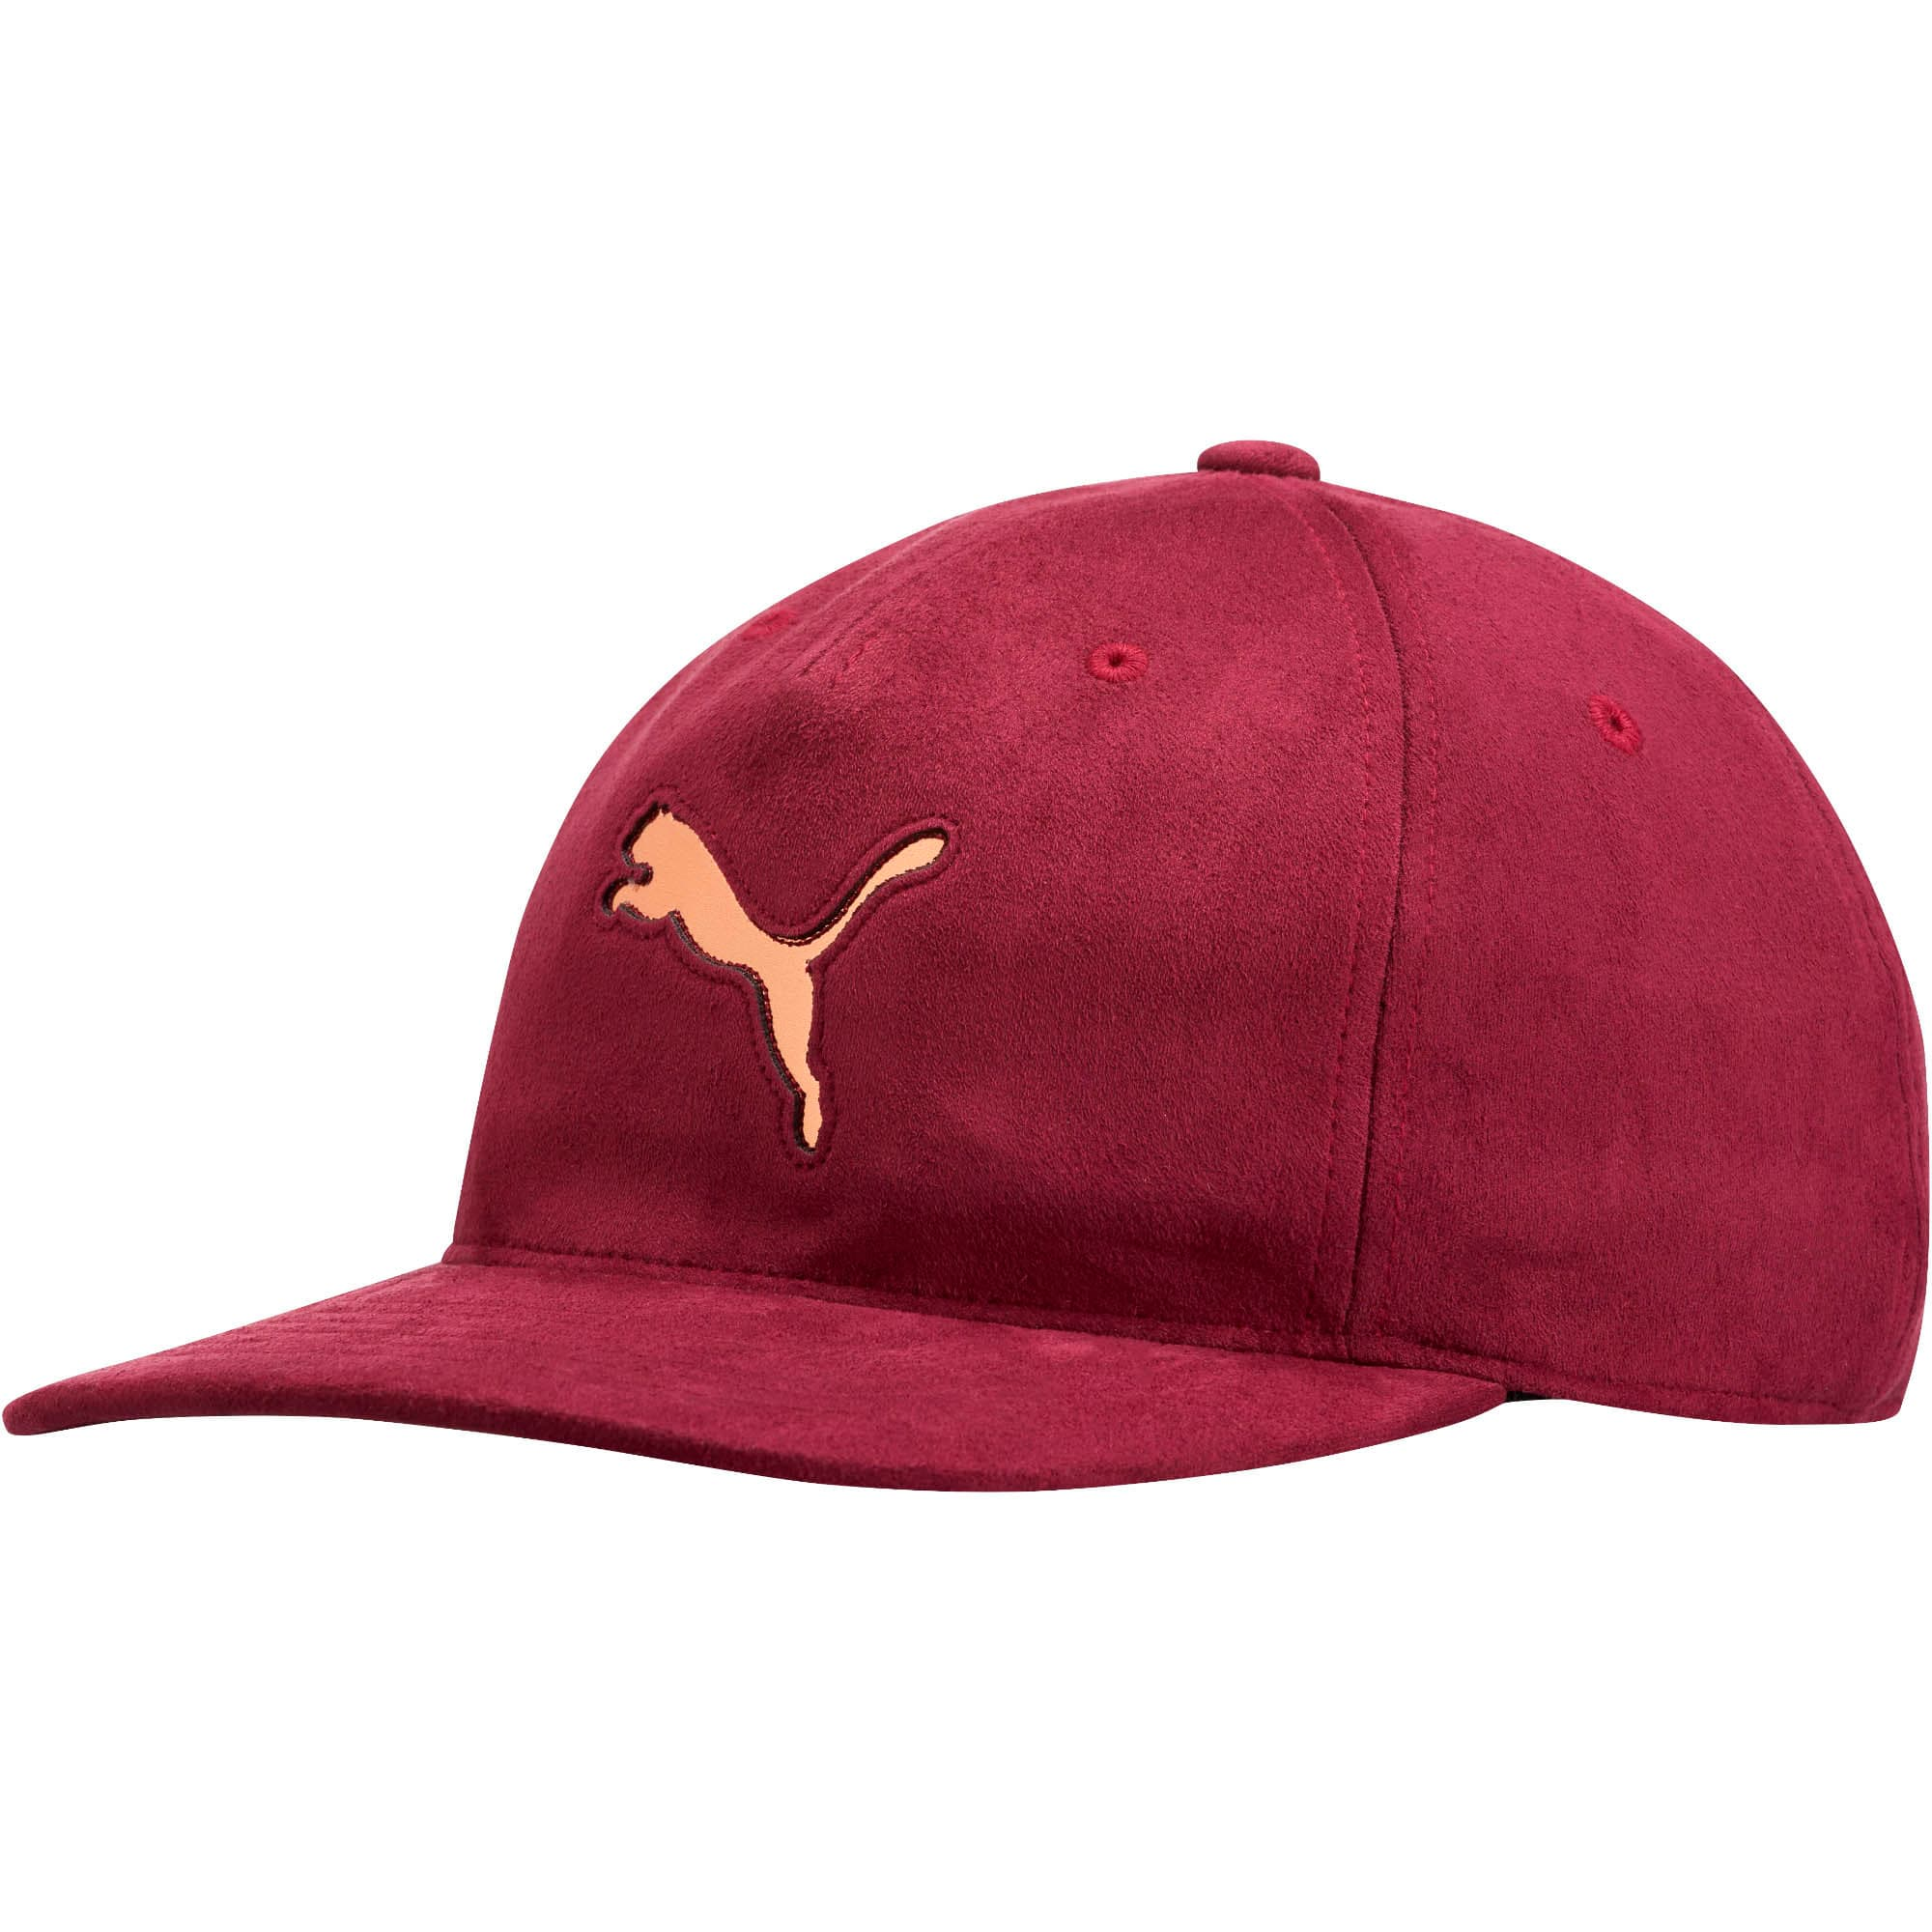 Thumbnail 1 of Women's Suede Relaxed Fit Hat, Maroon, medium